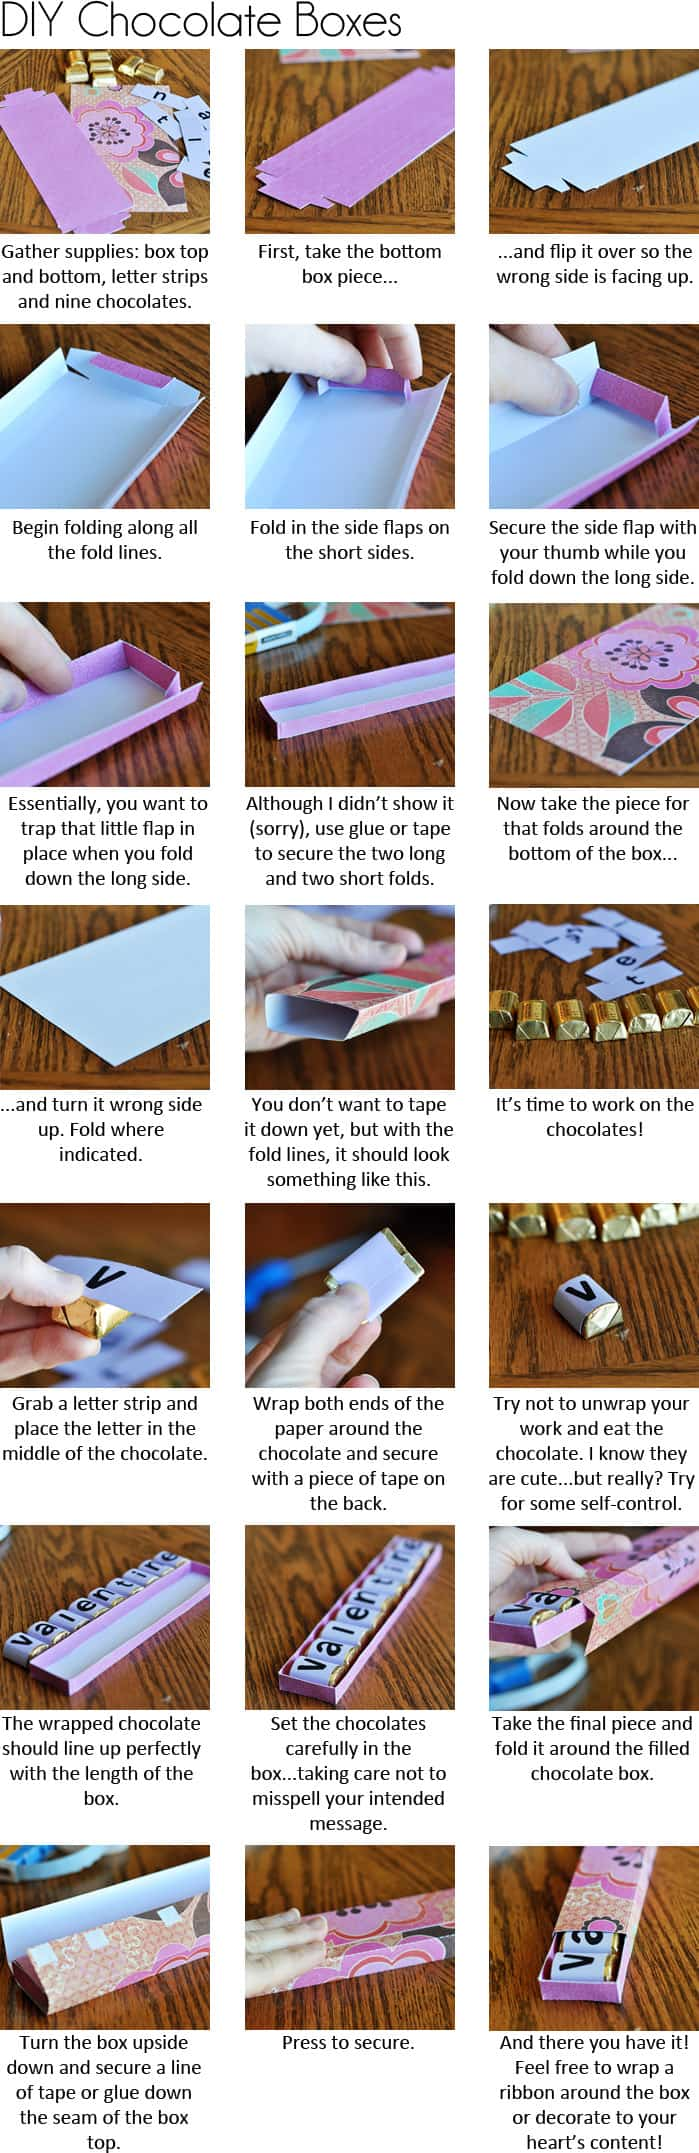 picture collage with step-by-step instructions on how to make a homemade Valentine's Day chocolate box